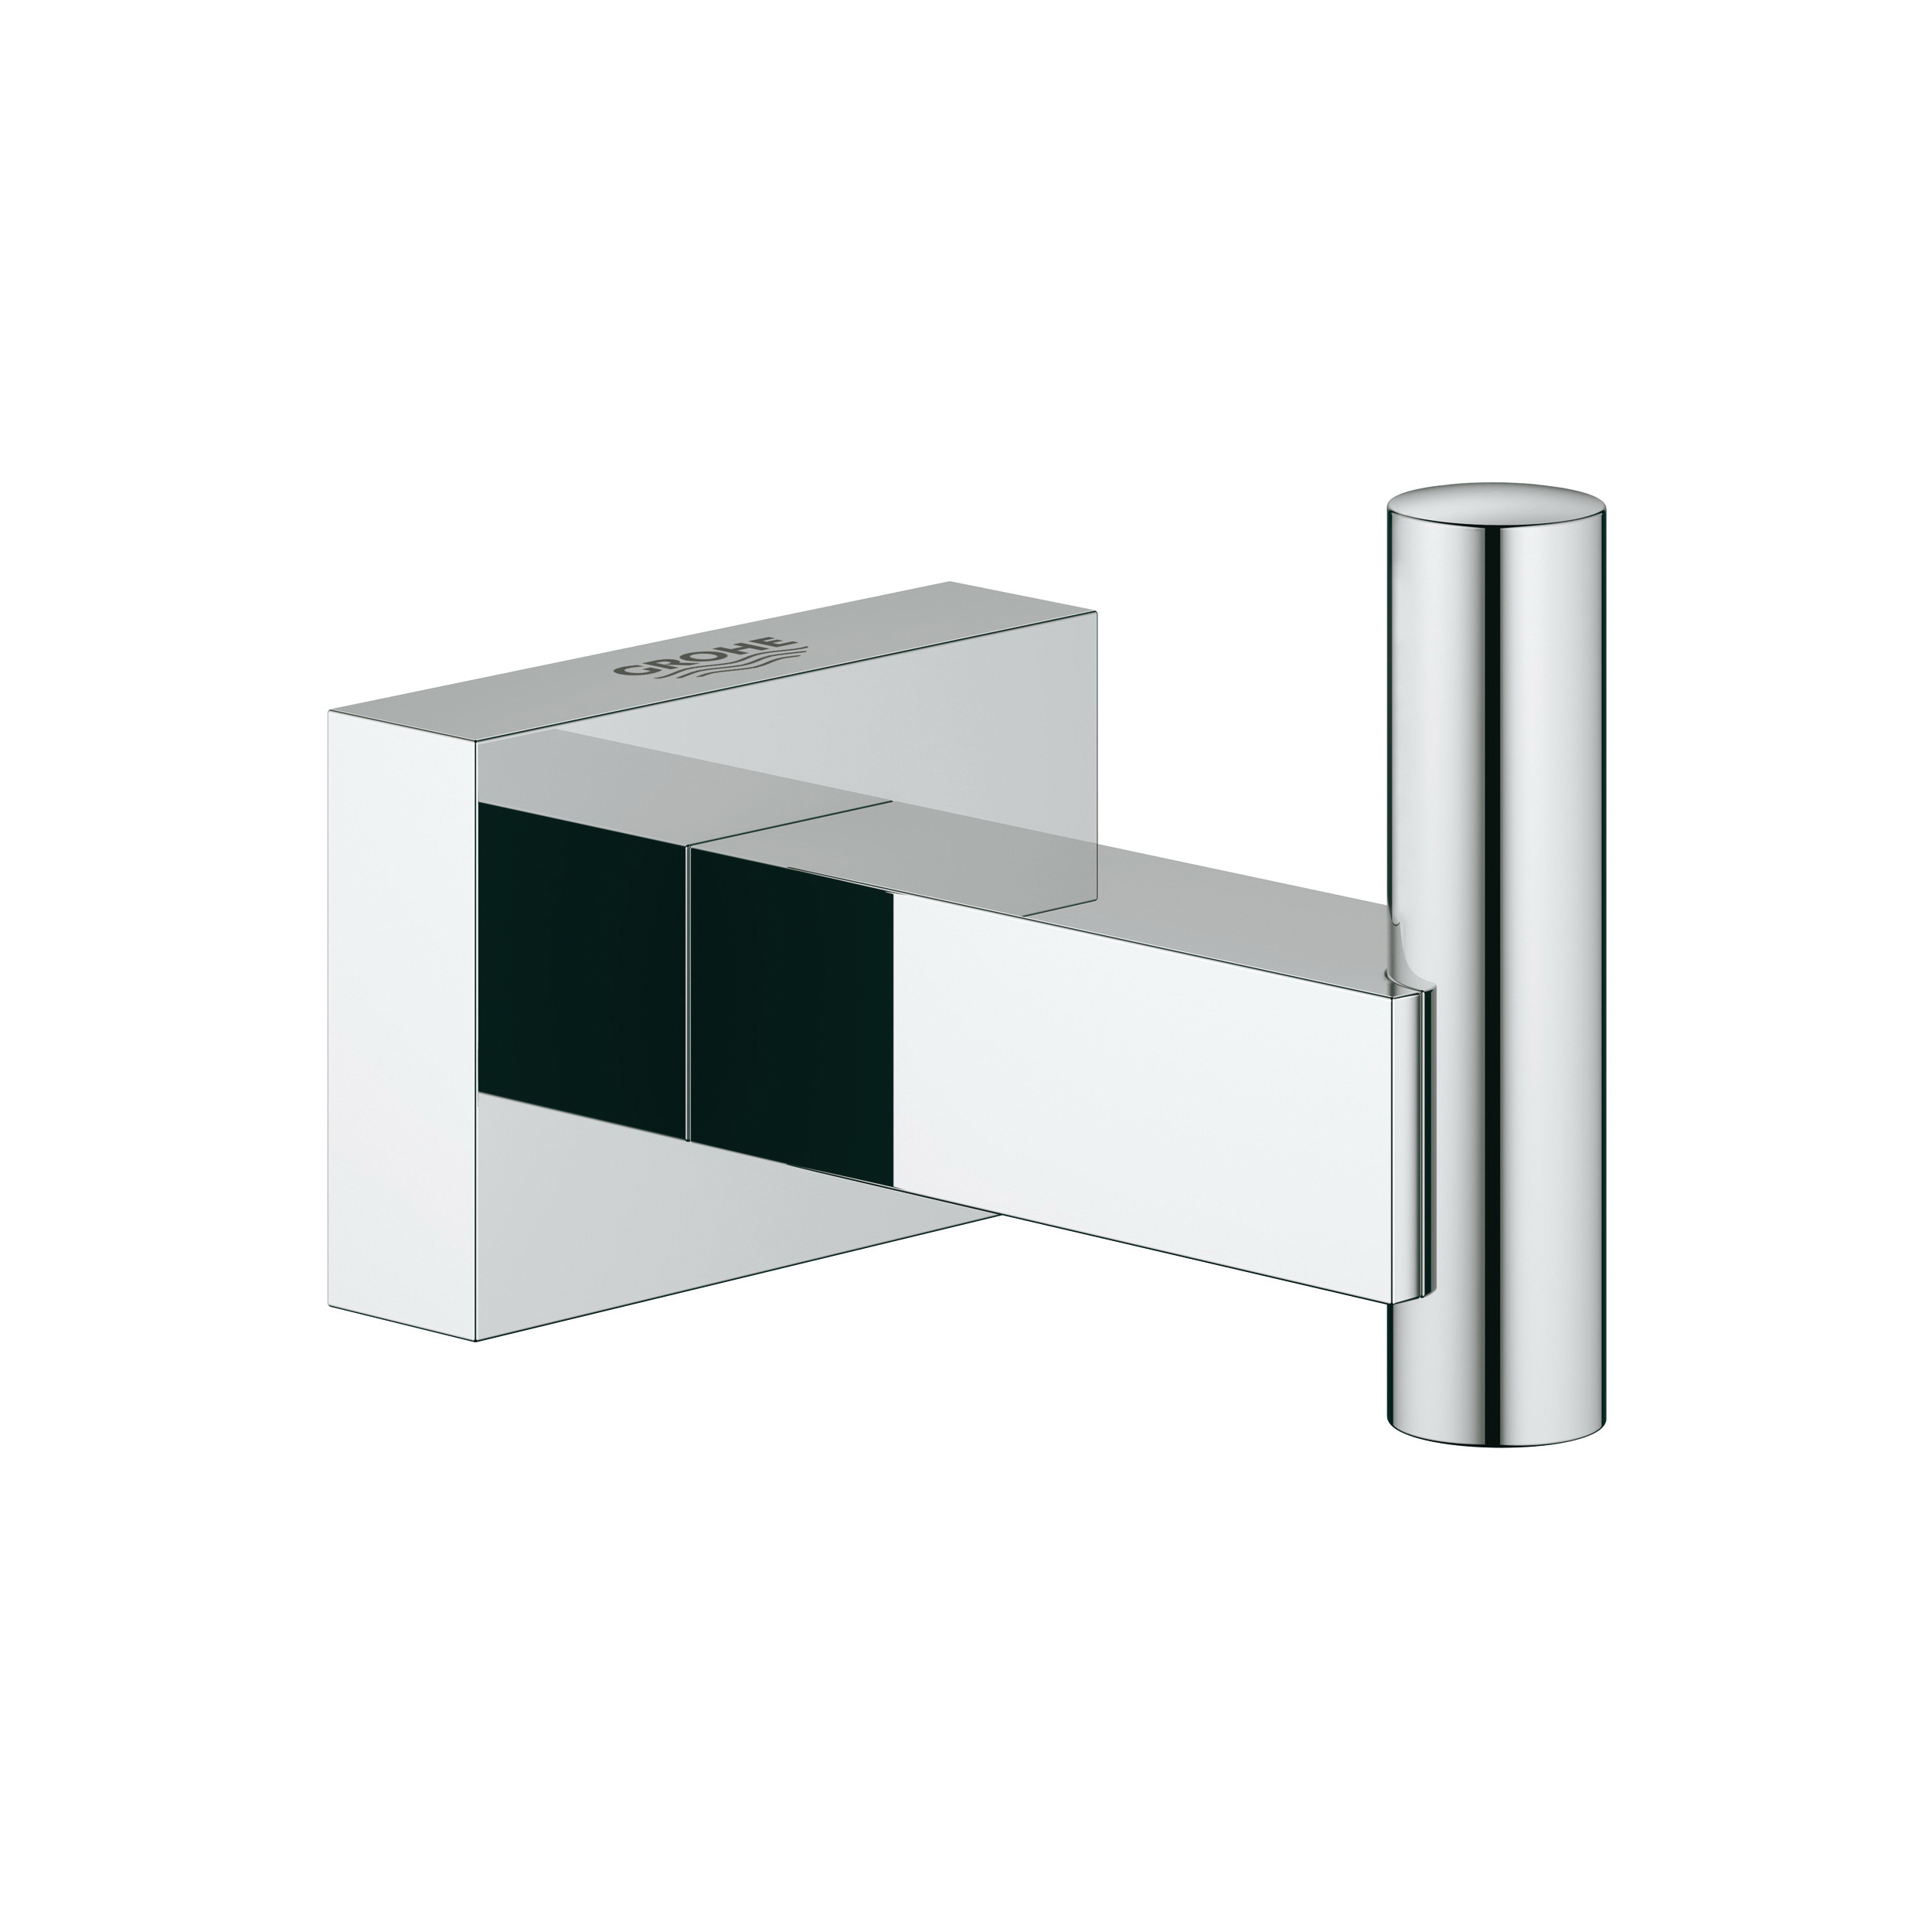 GROHE 40511001 Essentials Cube Robe Hook, 1 Hook, 2-11/16 in OAD x 1-15/16 in OAH, Metal, Import